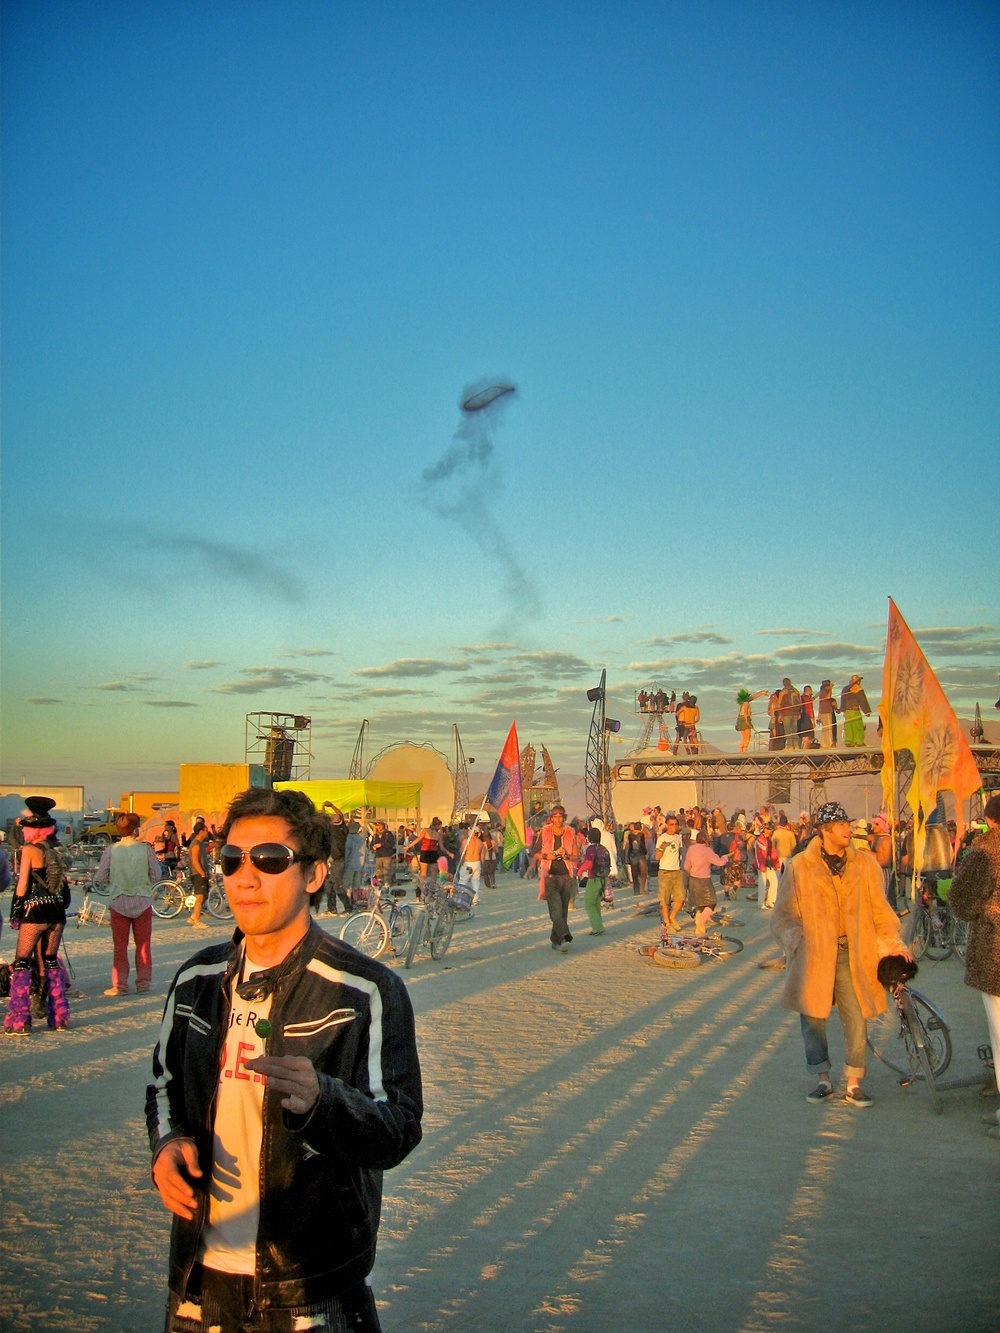 Burning-Man-2007 3.jpg